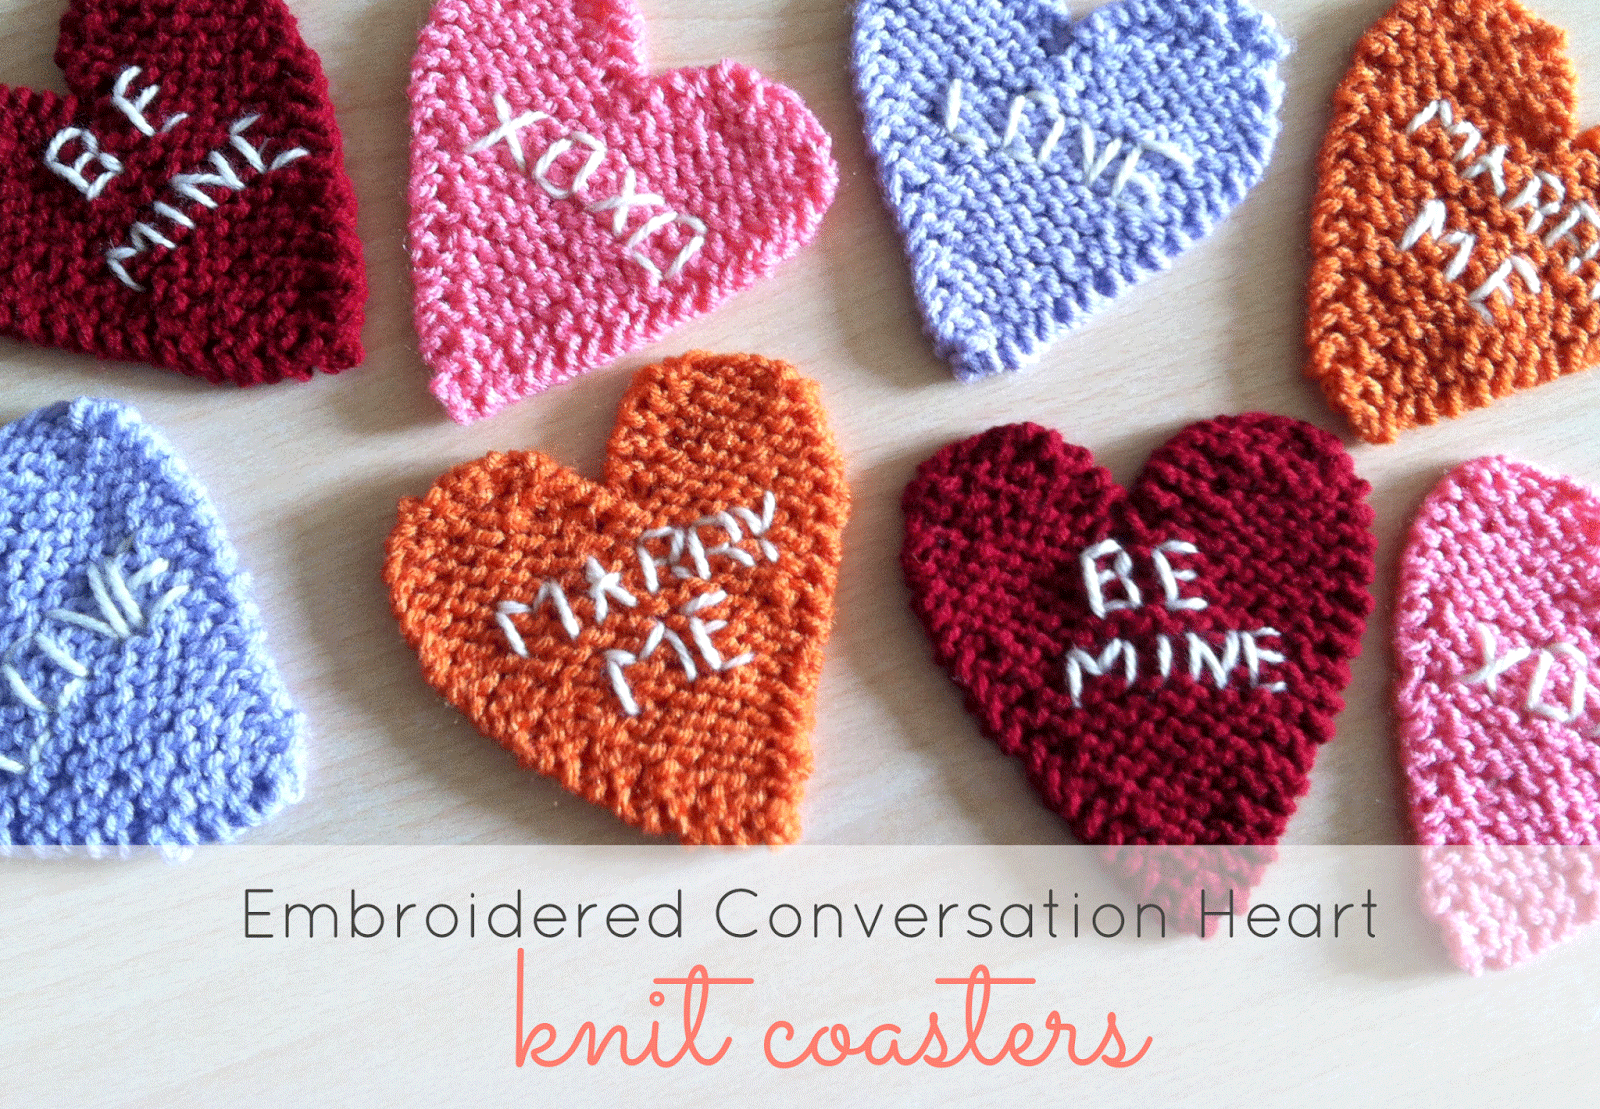 Embroidered Conversation Heart Knit Coasters